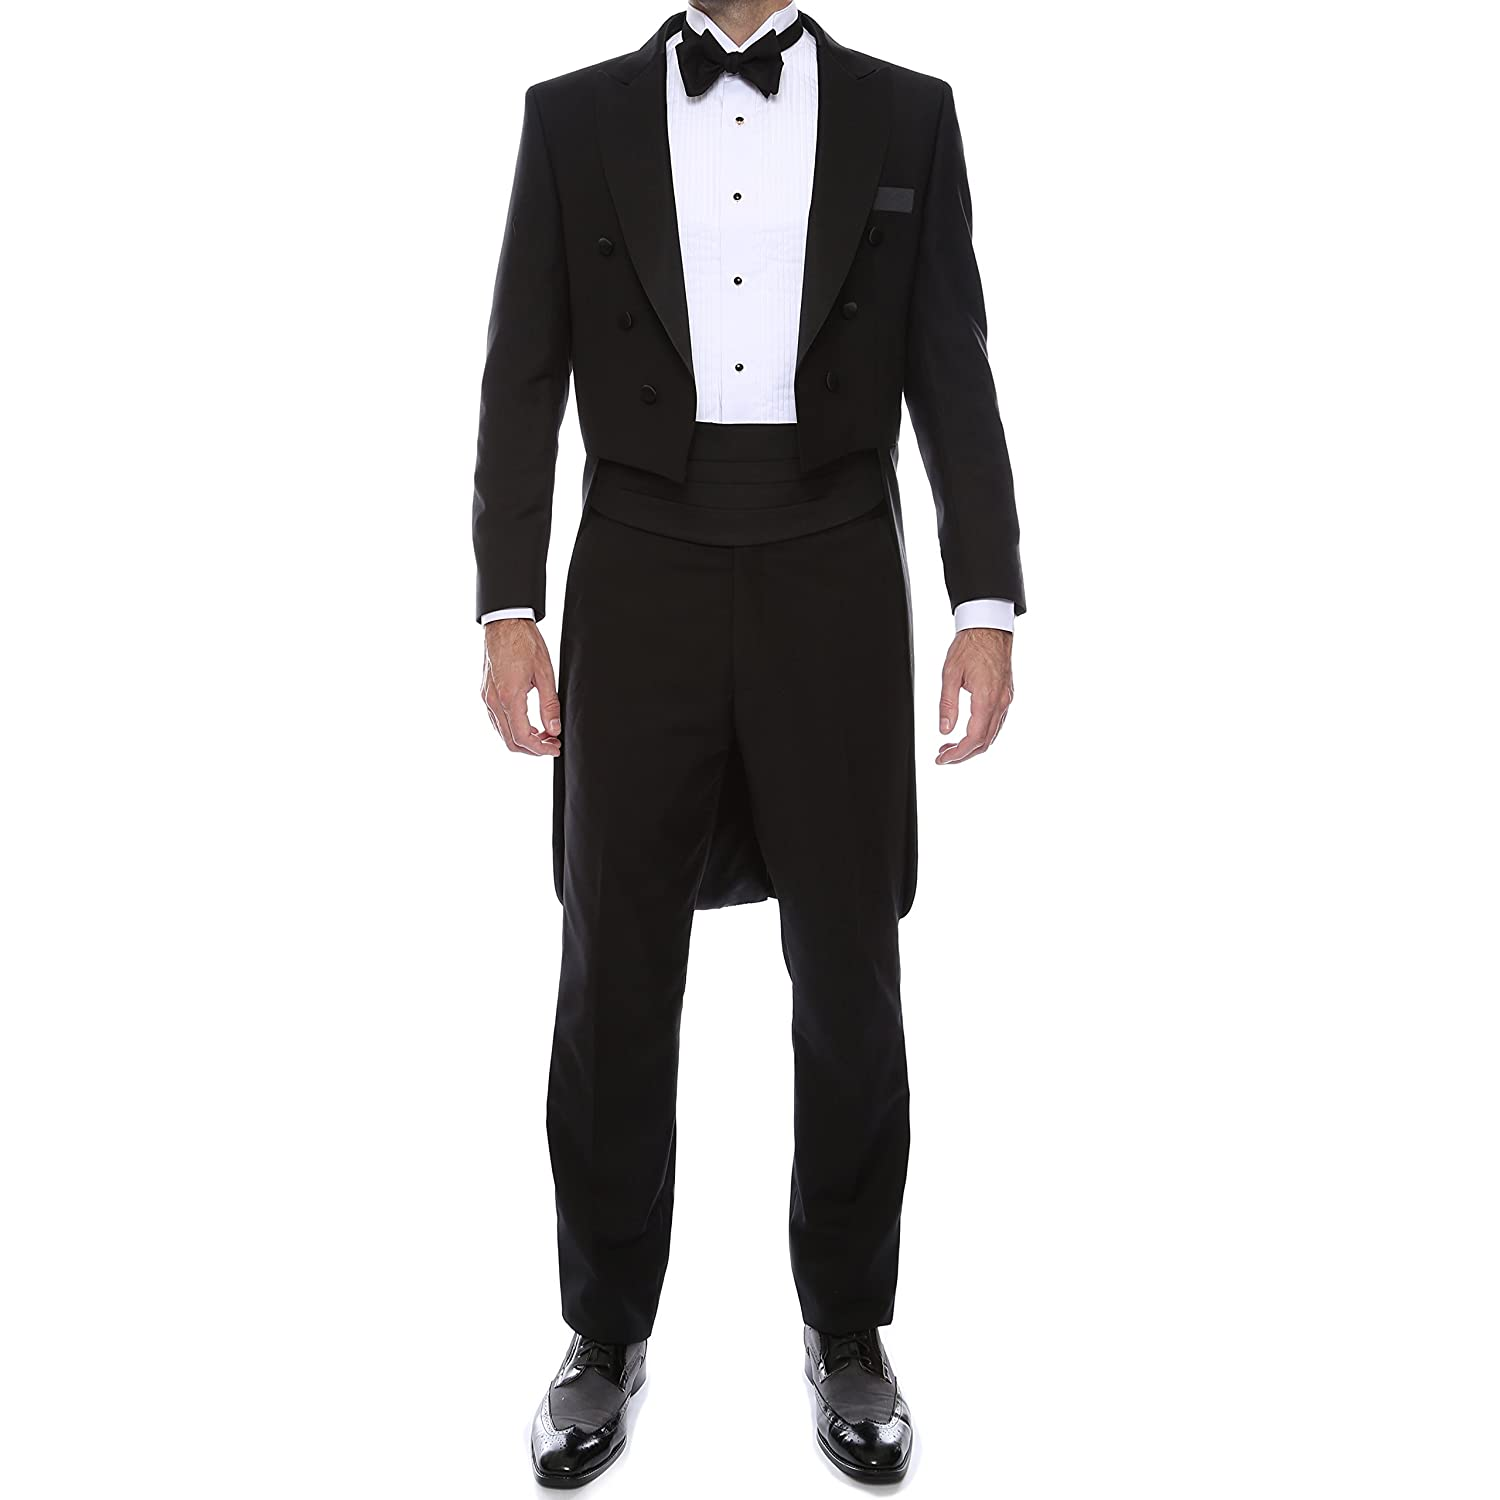 Men's Steampunk Clothing, Costumes, Fashion Ferrecci Premium Mens 2pc Victorian Tail Tuxedo - Tailcoat & Slacks $109.75 AT vintagedancer.com